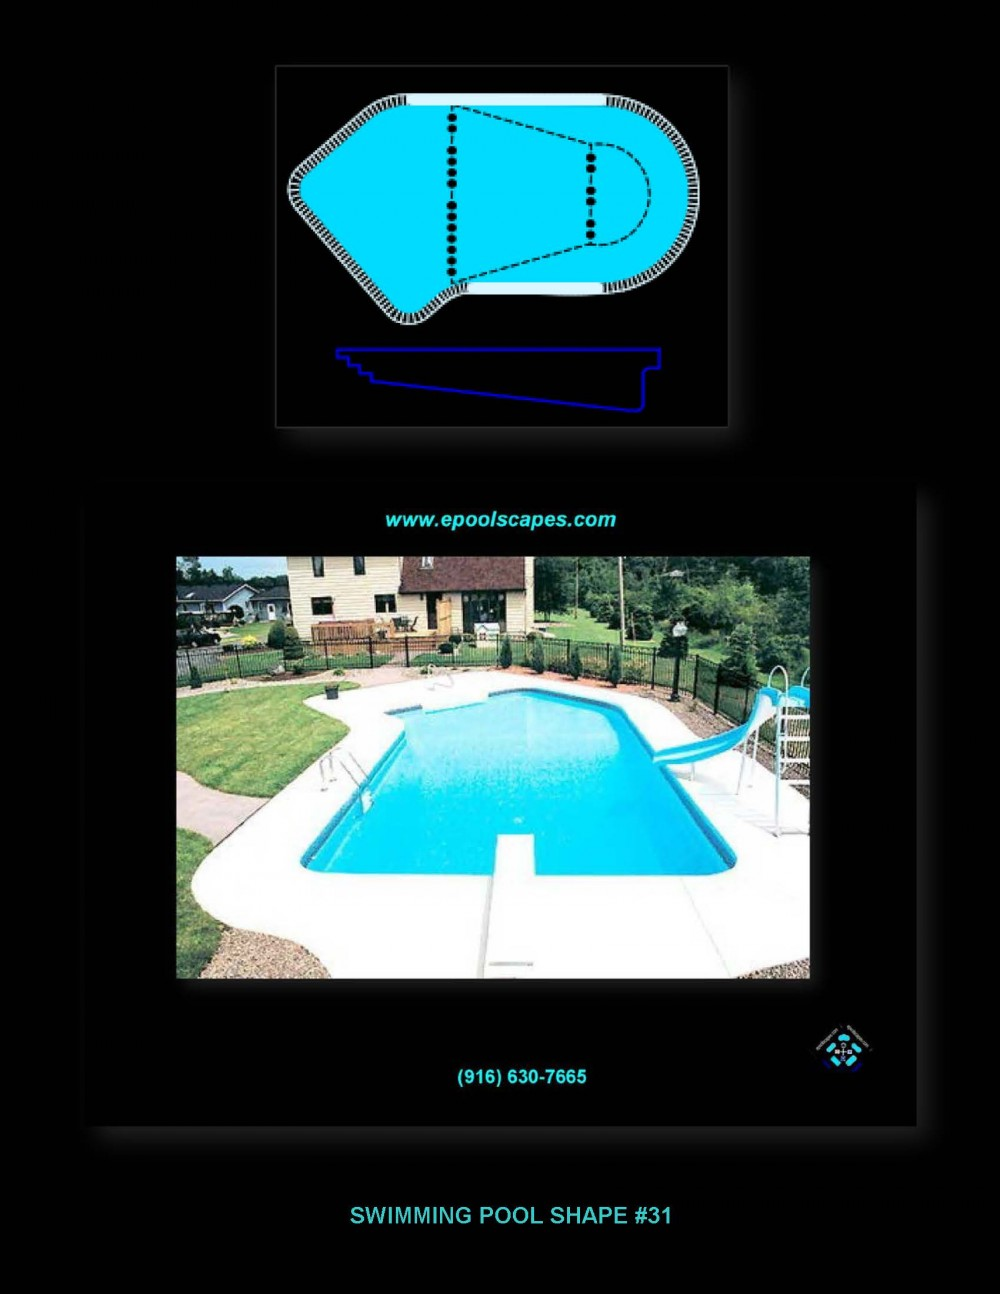 Pool Shape #31